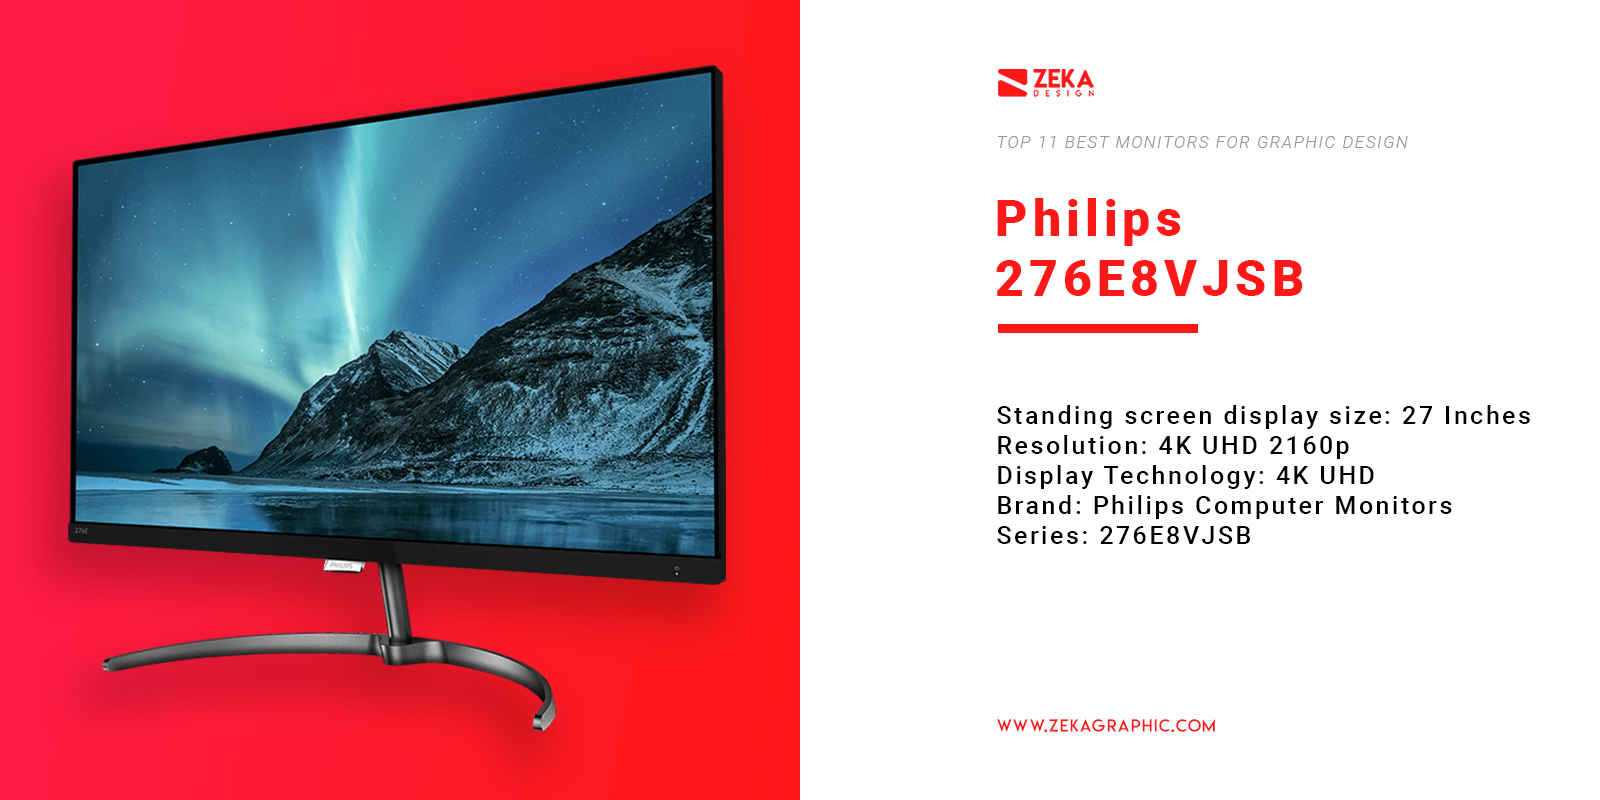 Philips 276E8VJSB Monitor for Graphic Design